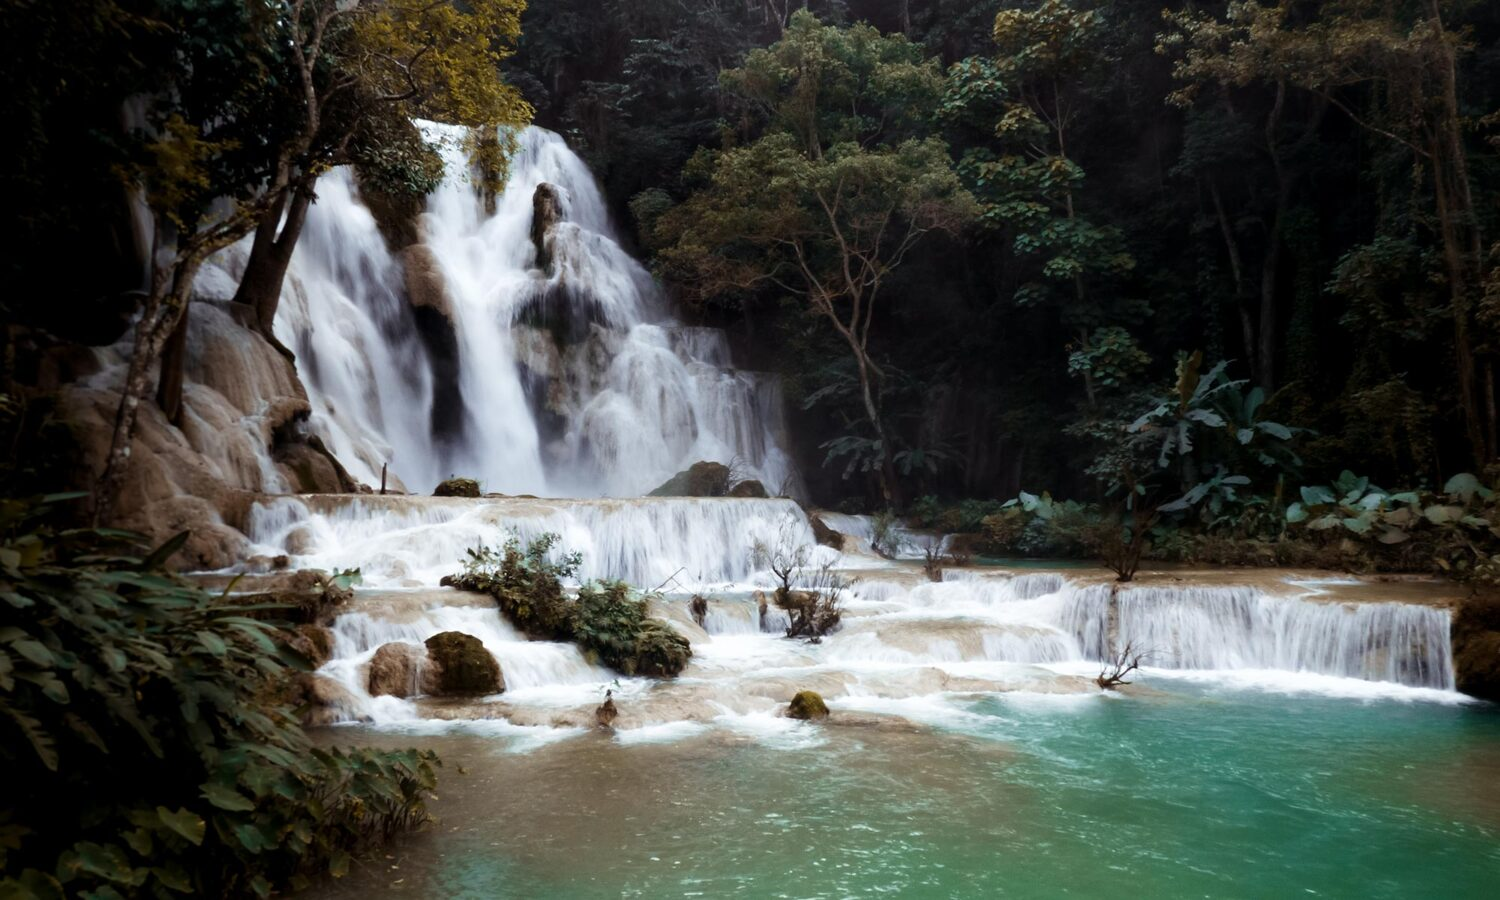 Turquoise blue pools at Kuang Si Falls, just outside Luang Prabang